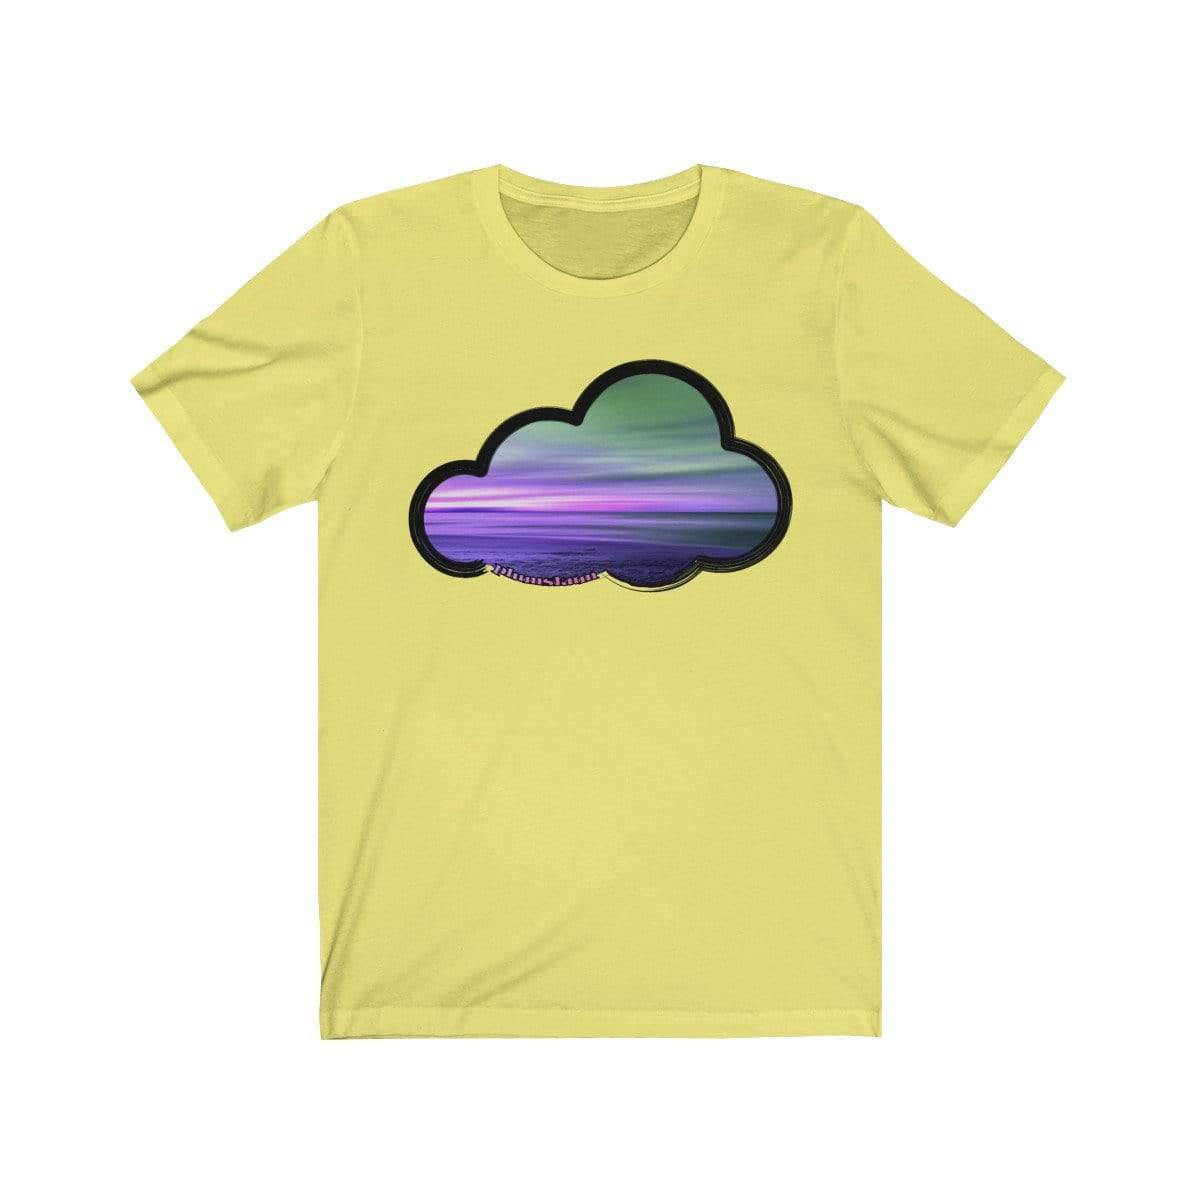 Printify T-Shirt Yellow / M Beaches Art Clouds Tee